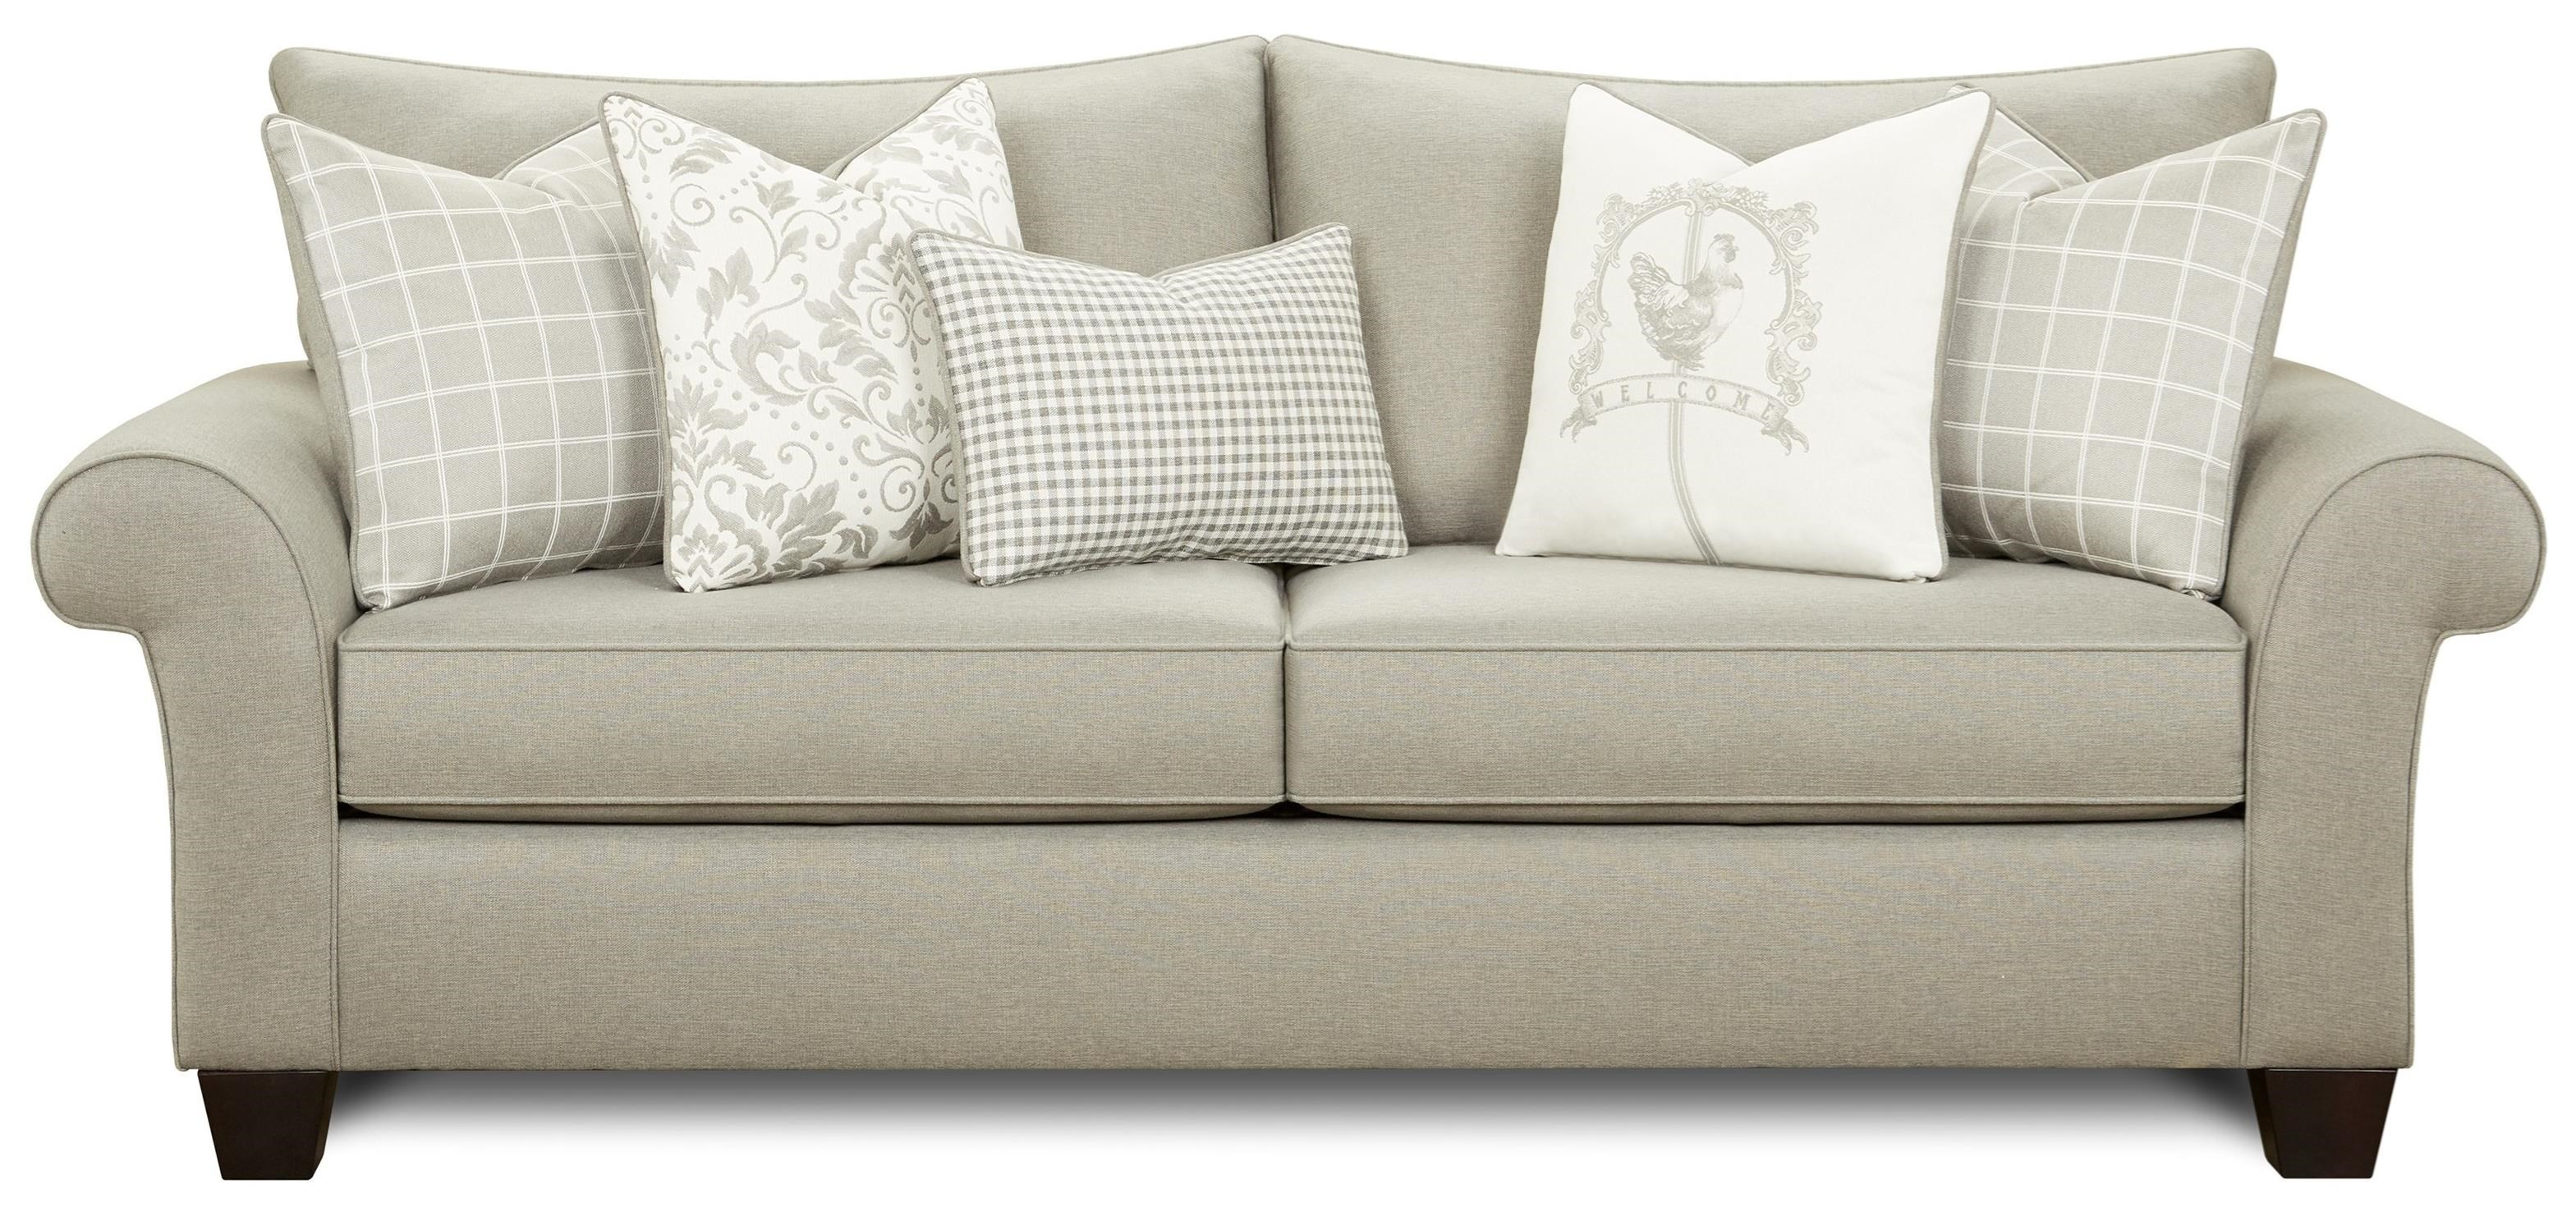 50-00 Sofa by Fusion Furniture at Furniture Superstore - Rochester, MN